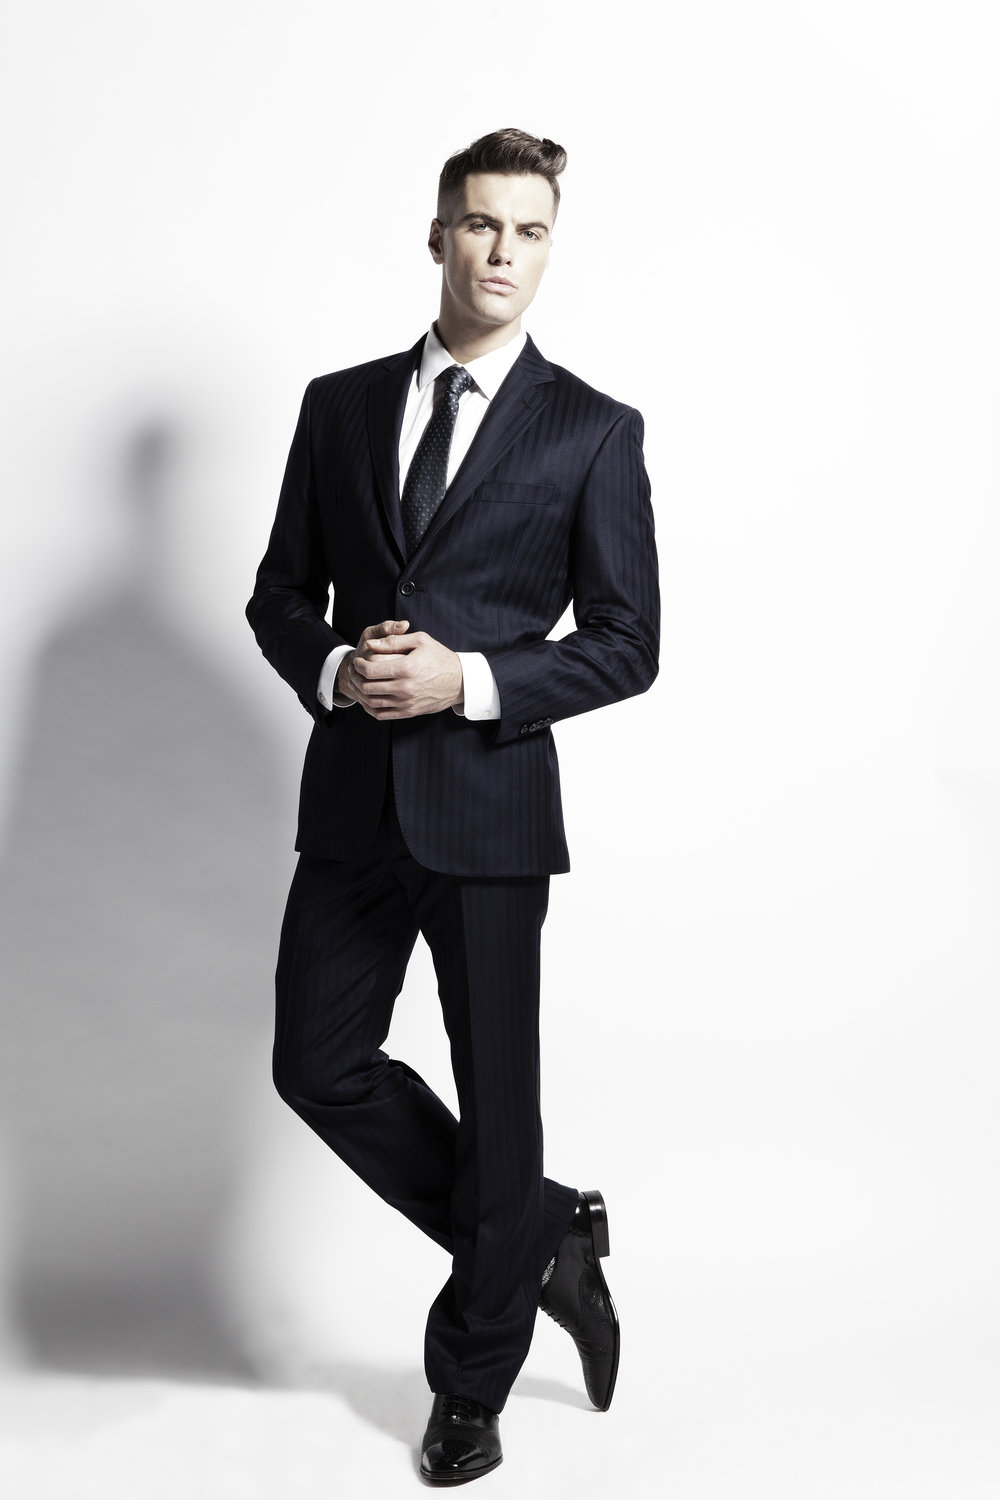 140128_08_3_Mens_Styles_formal_074b.jpg